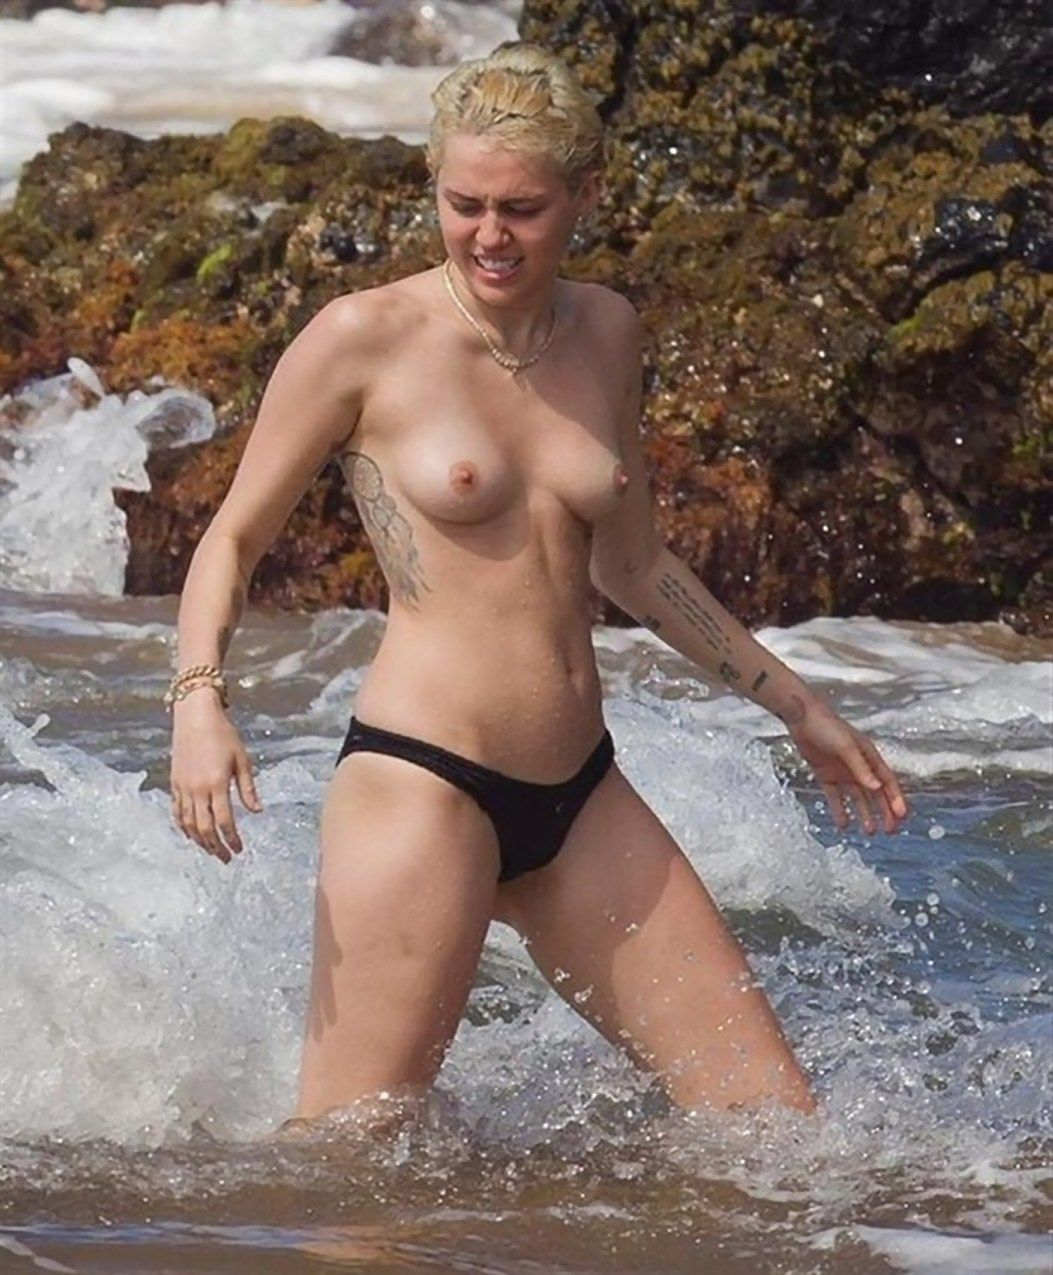 Miley Cyrus Tattoos and Topless at the Beach In Hawaii